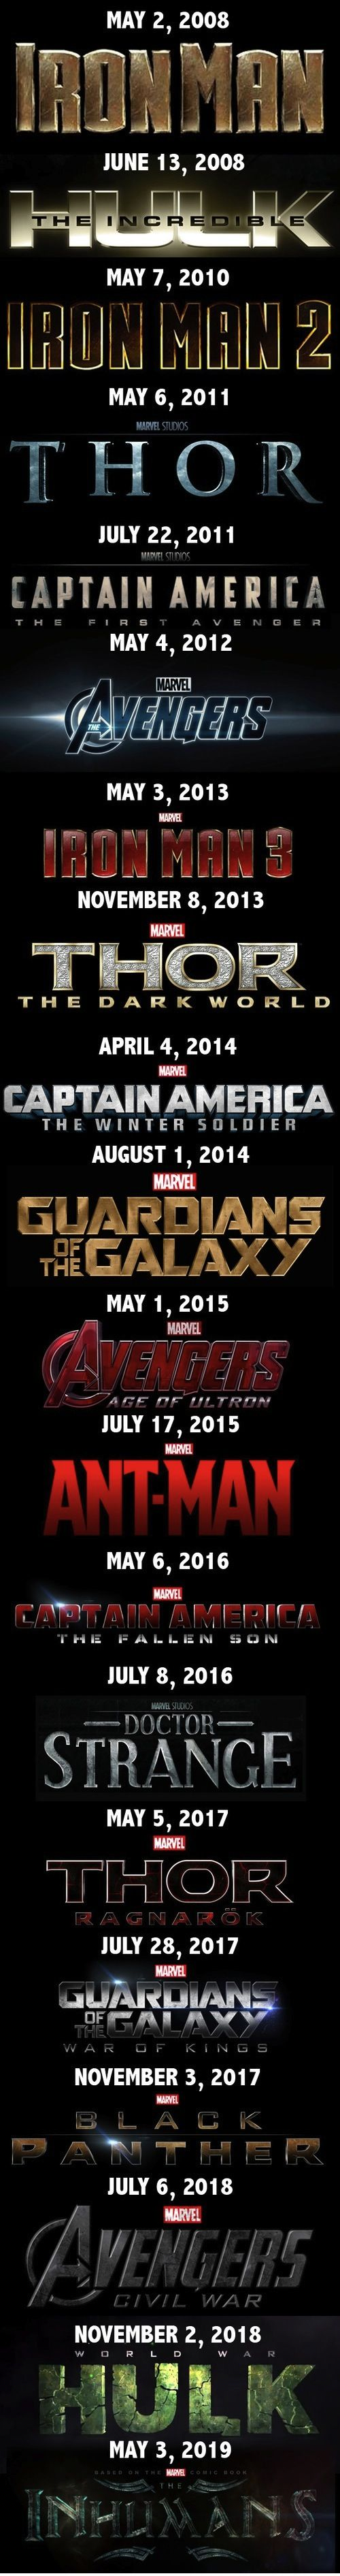 Marvel release dates